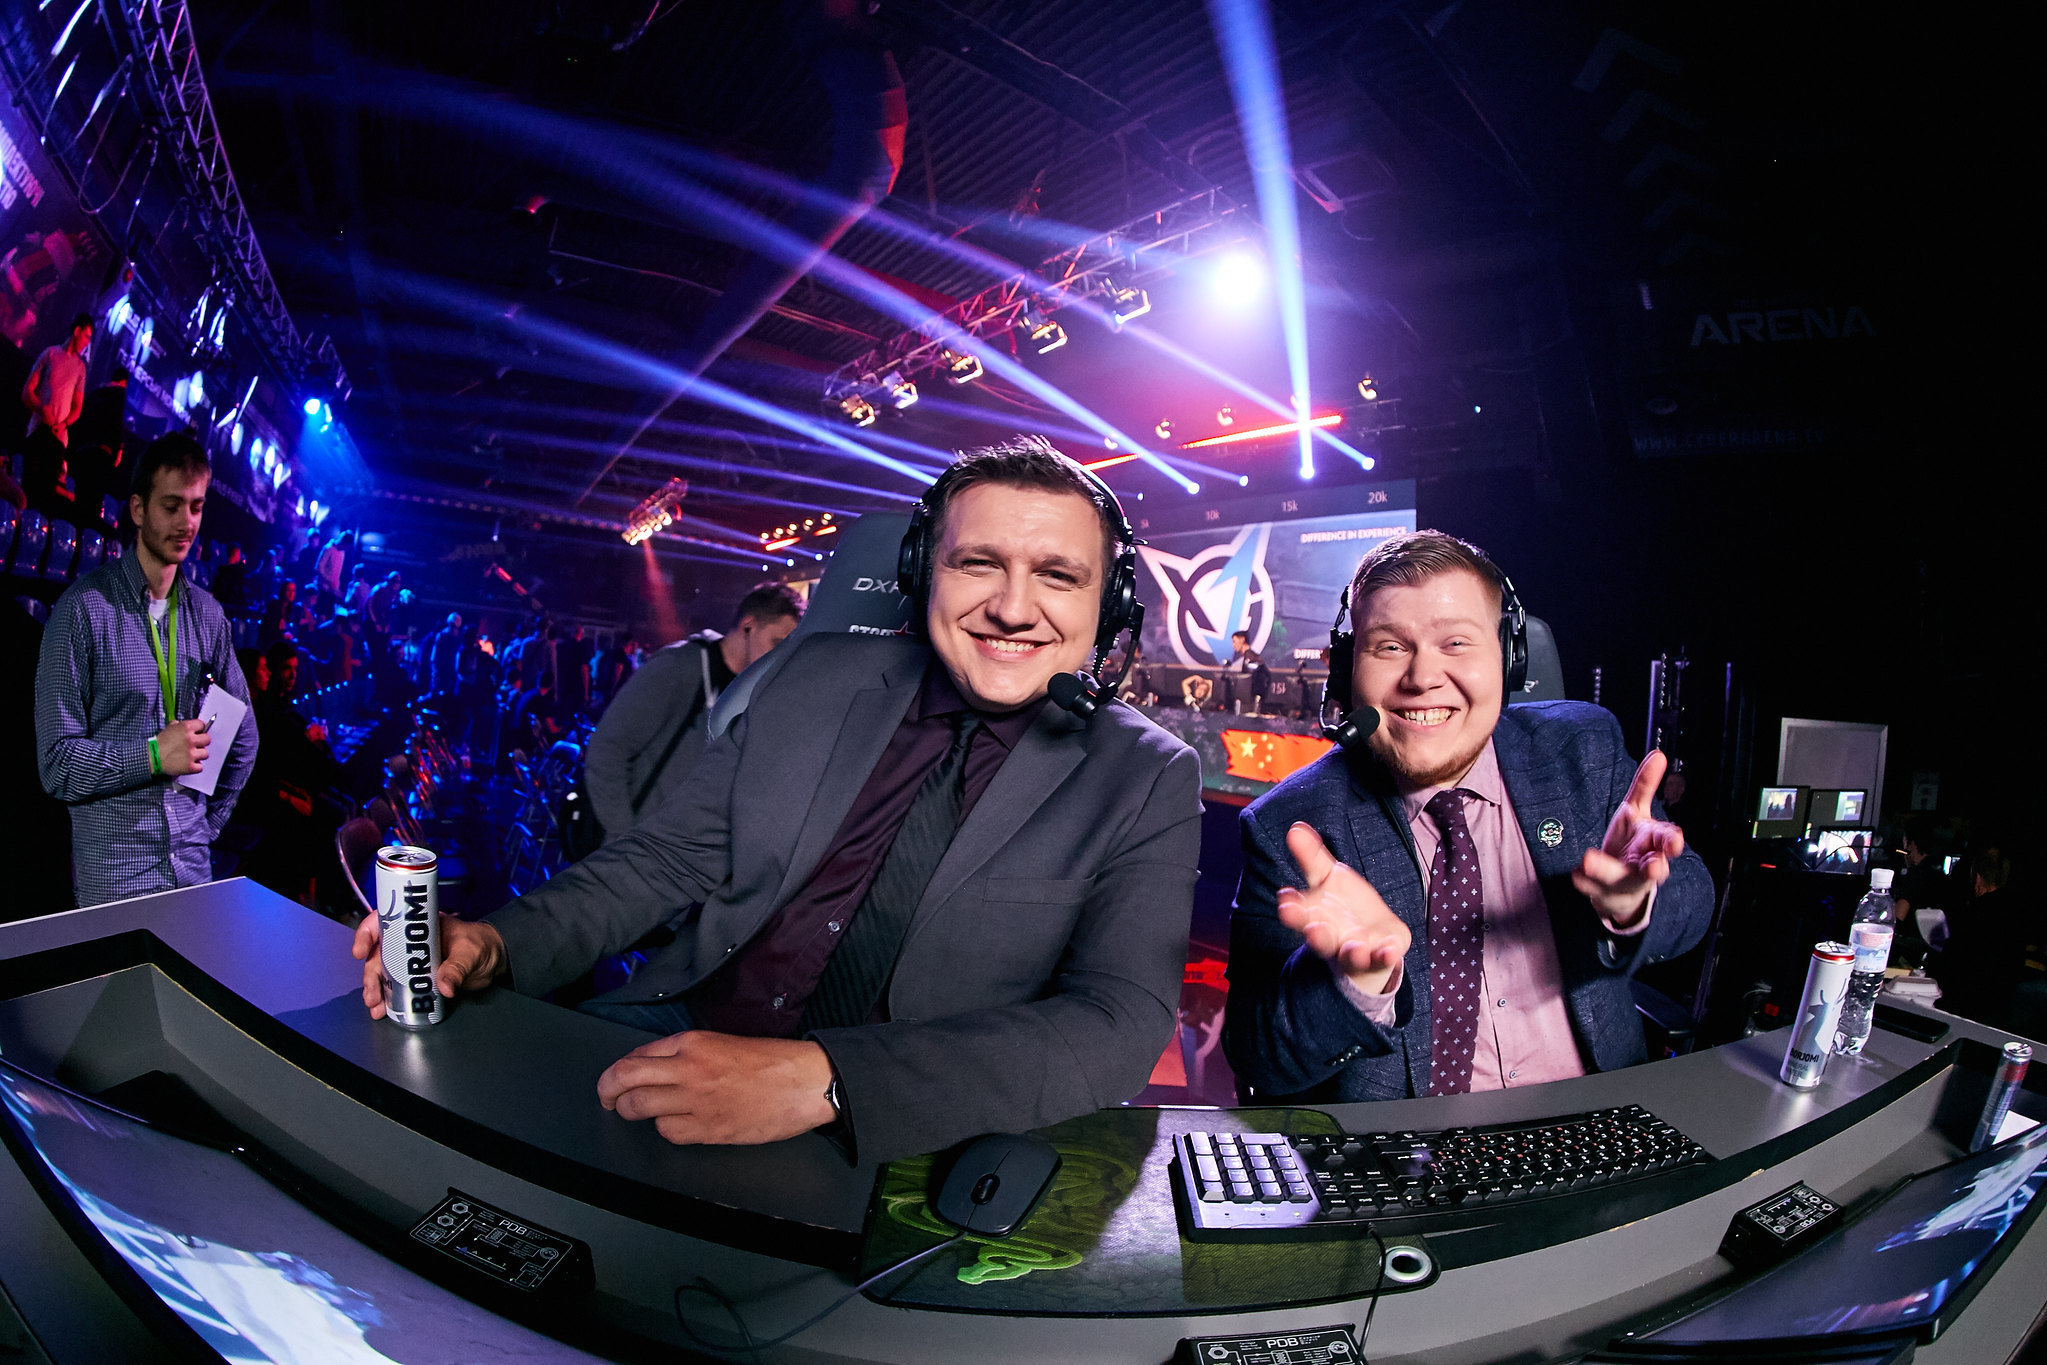 Viewer's guide for the closed qualifier for StarLadder ImbaTV Dota 2 Minor